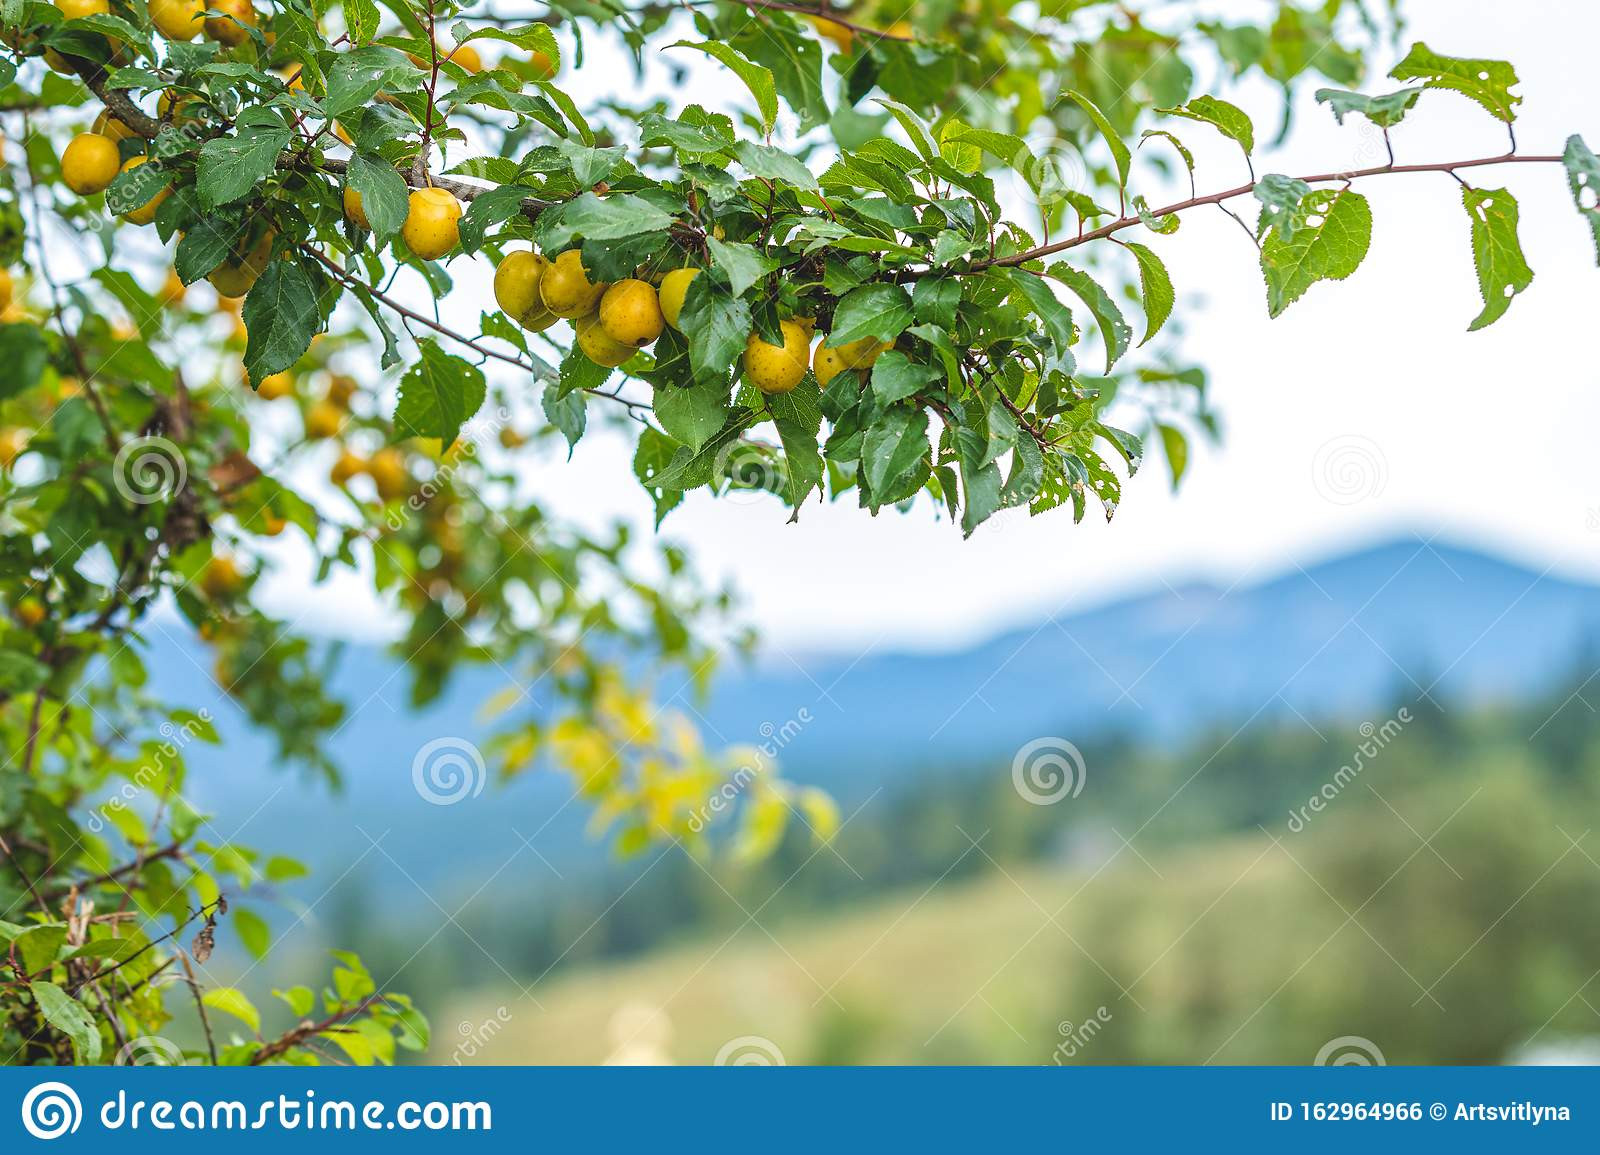 Juicy Beautiful Amazing Nice Cherry Plum Myrobalan Plum Fruit On